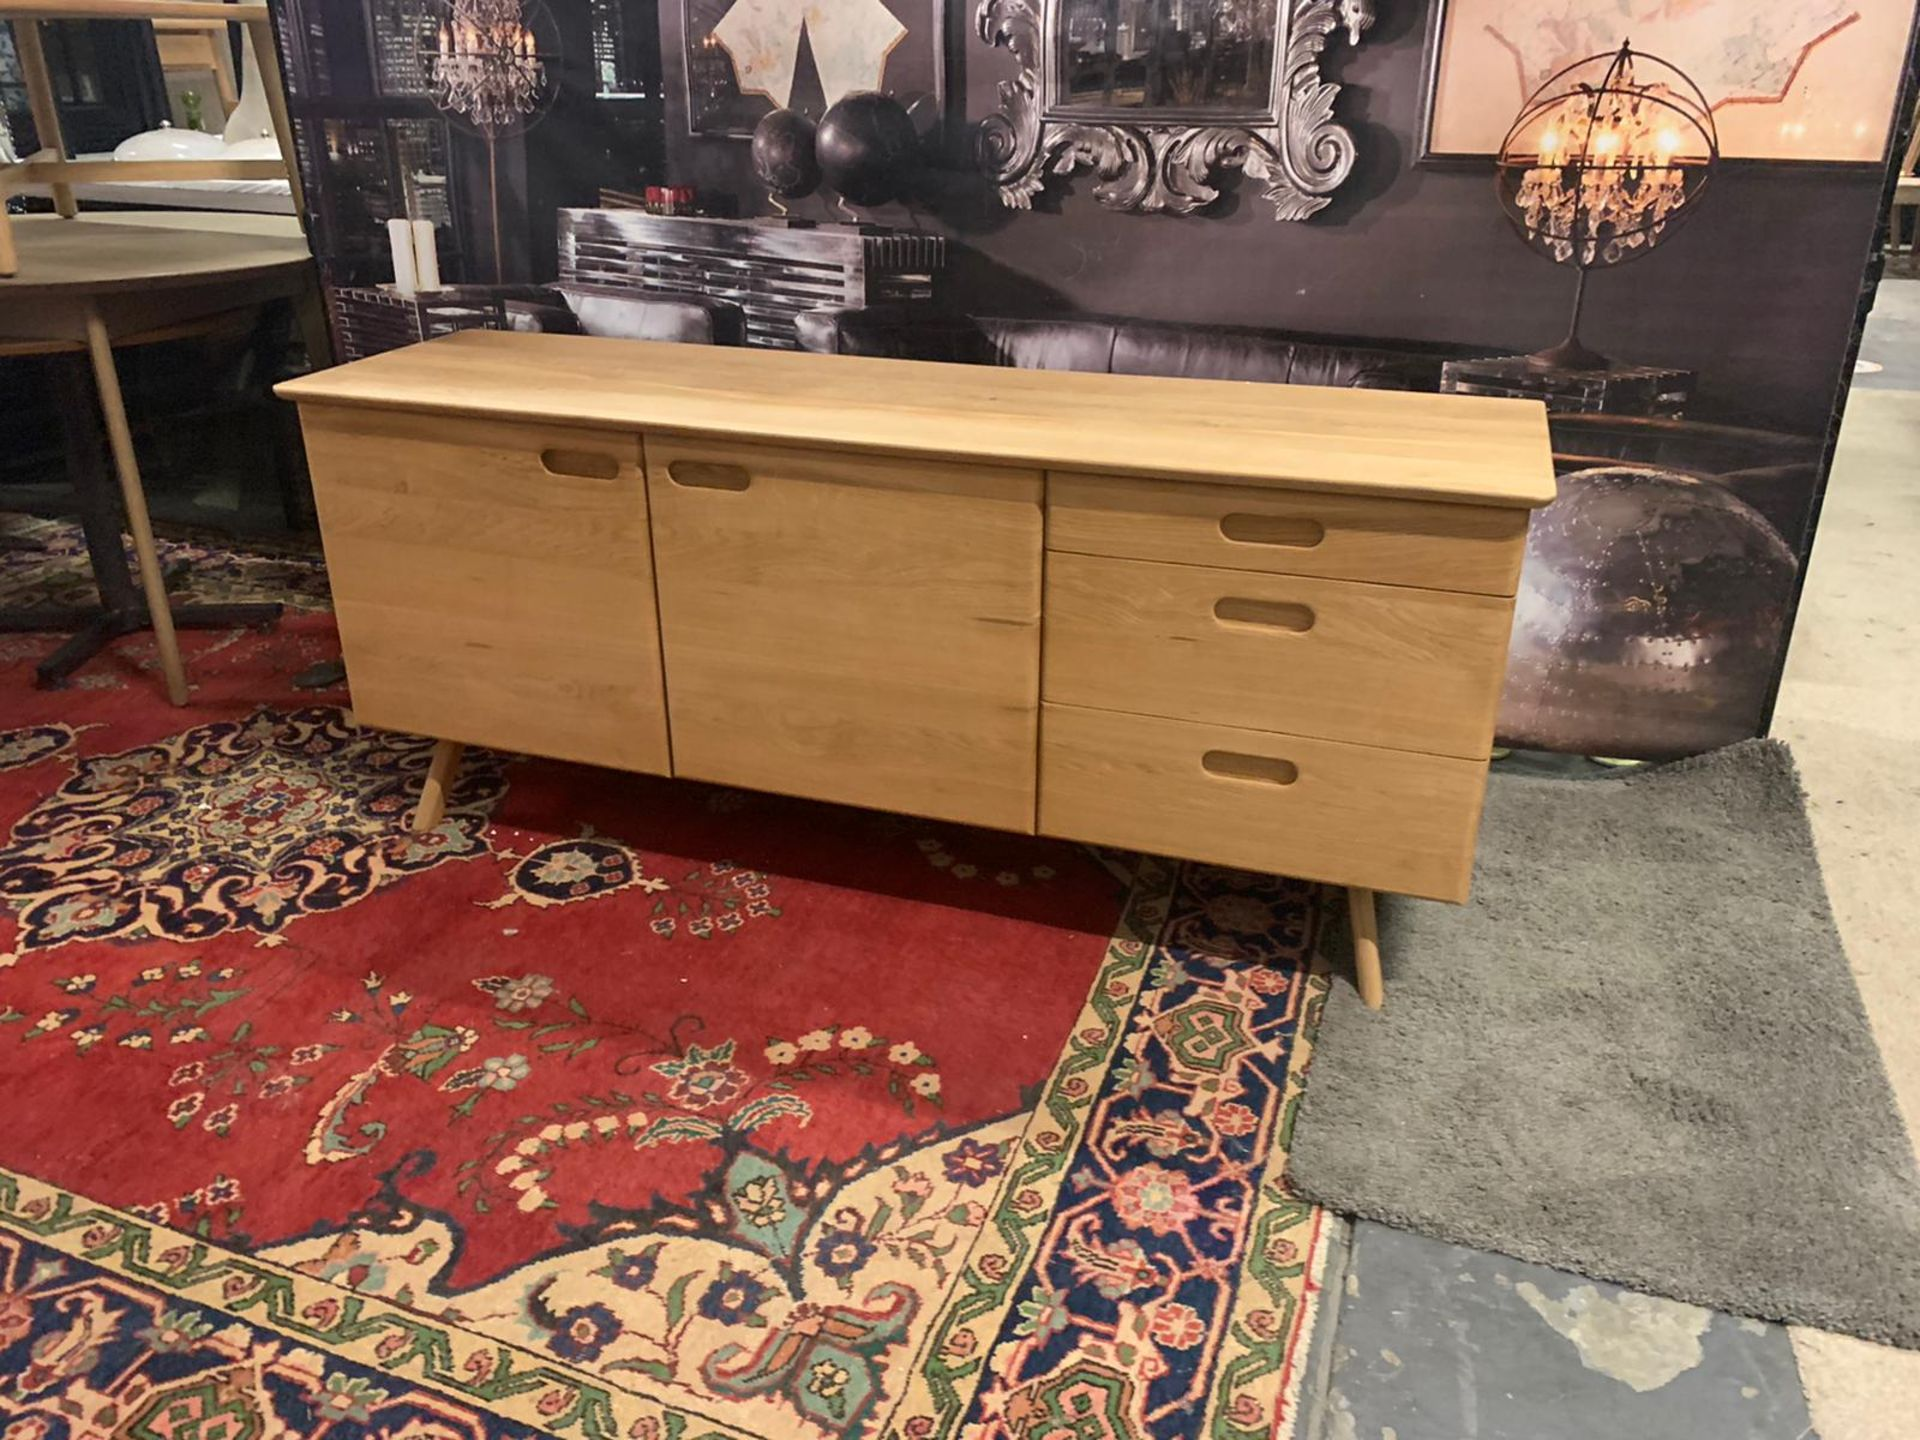 Laura Ashley Walnut Hazlemere Sideboard Taking inspiration from the iconic furniture designs of - Image 2 of 4